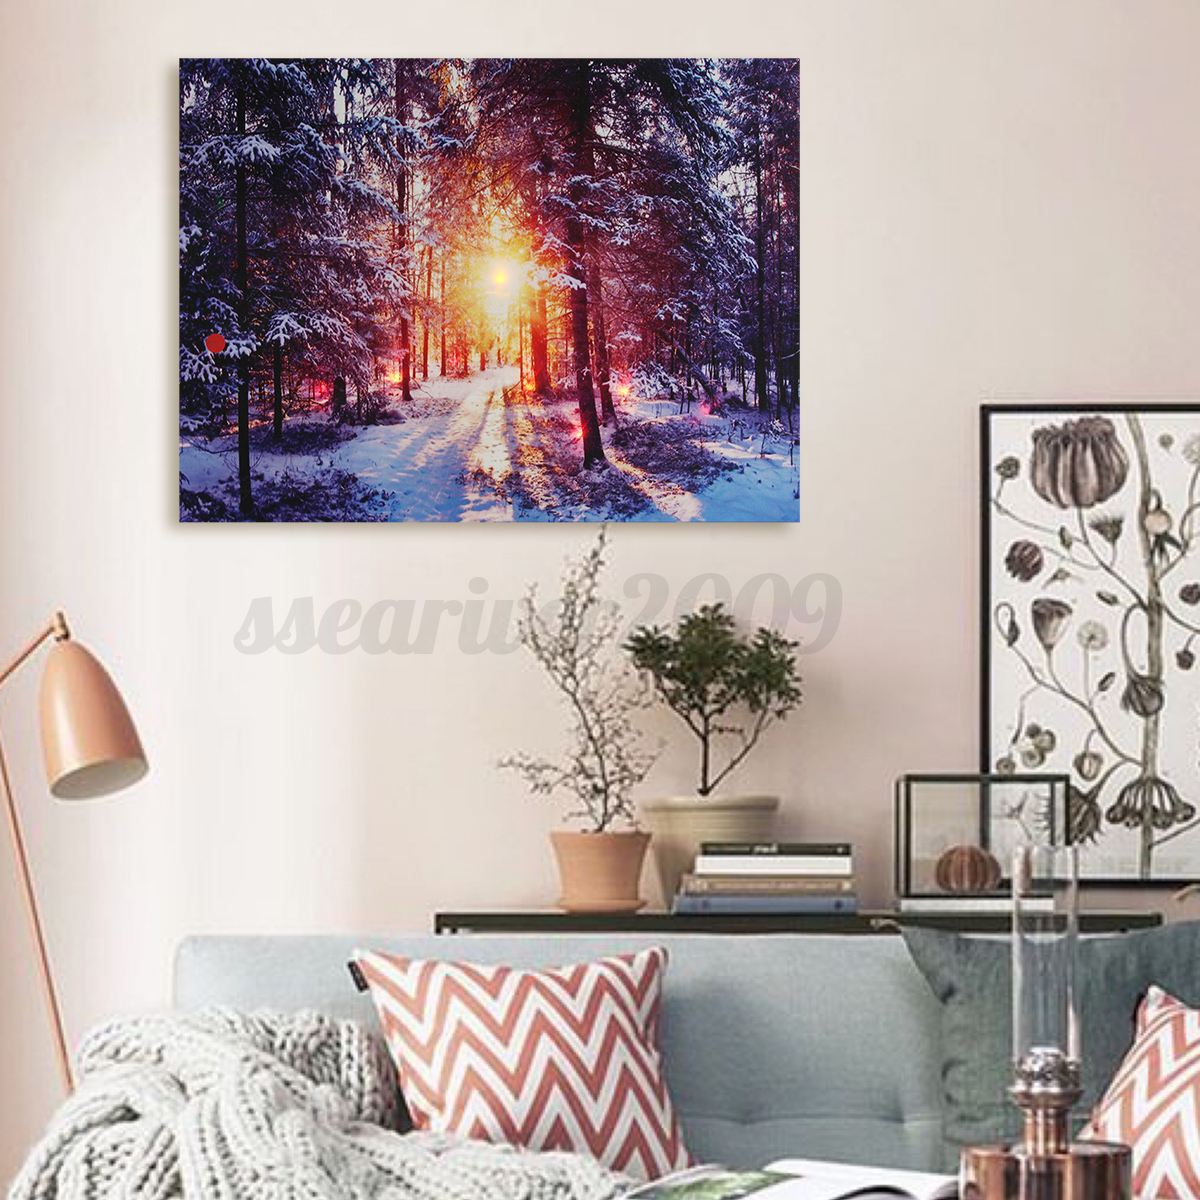 Led Wall Light Decor: Winter Snow Canvas Painting LED Light Up Pictures Art Home